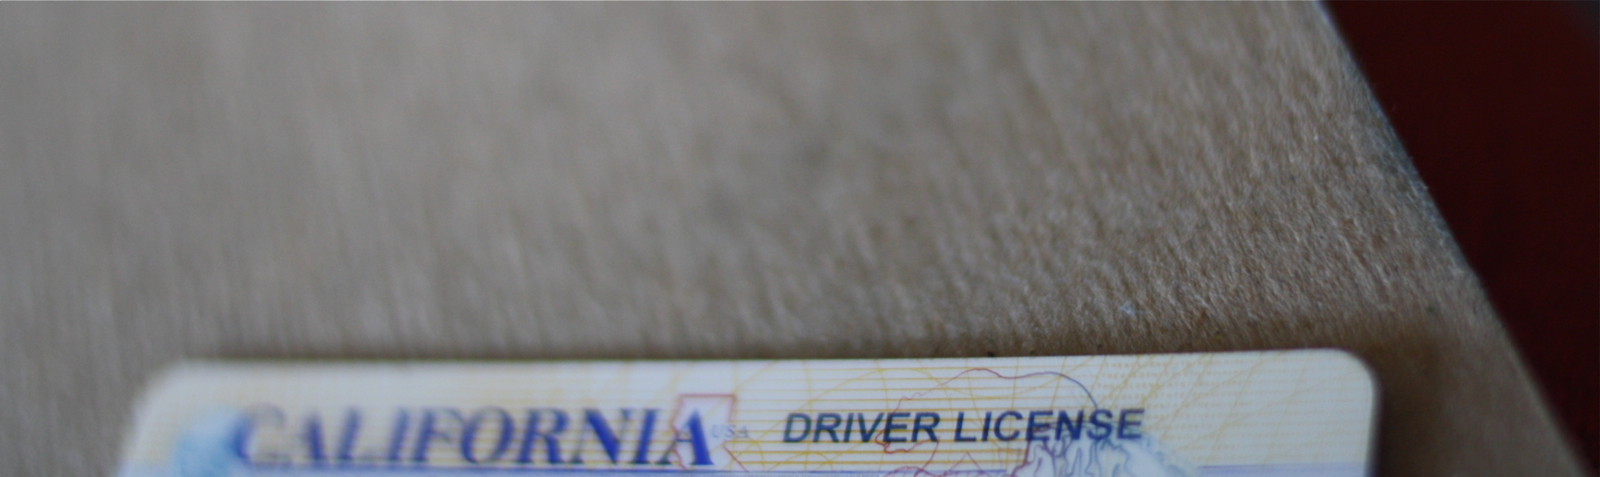 New Bill Will Allow Immigrant Driver's Licenses